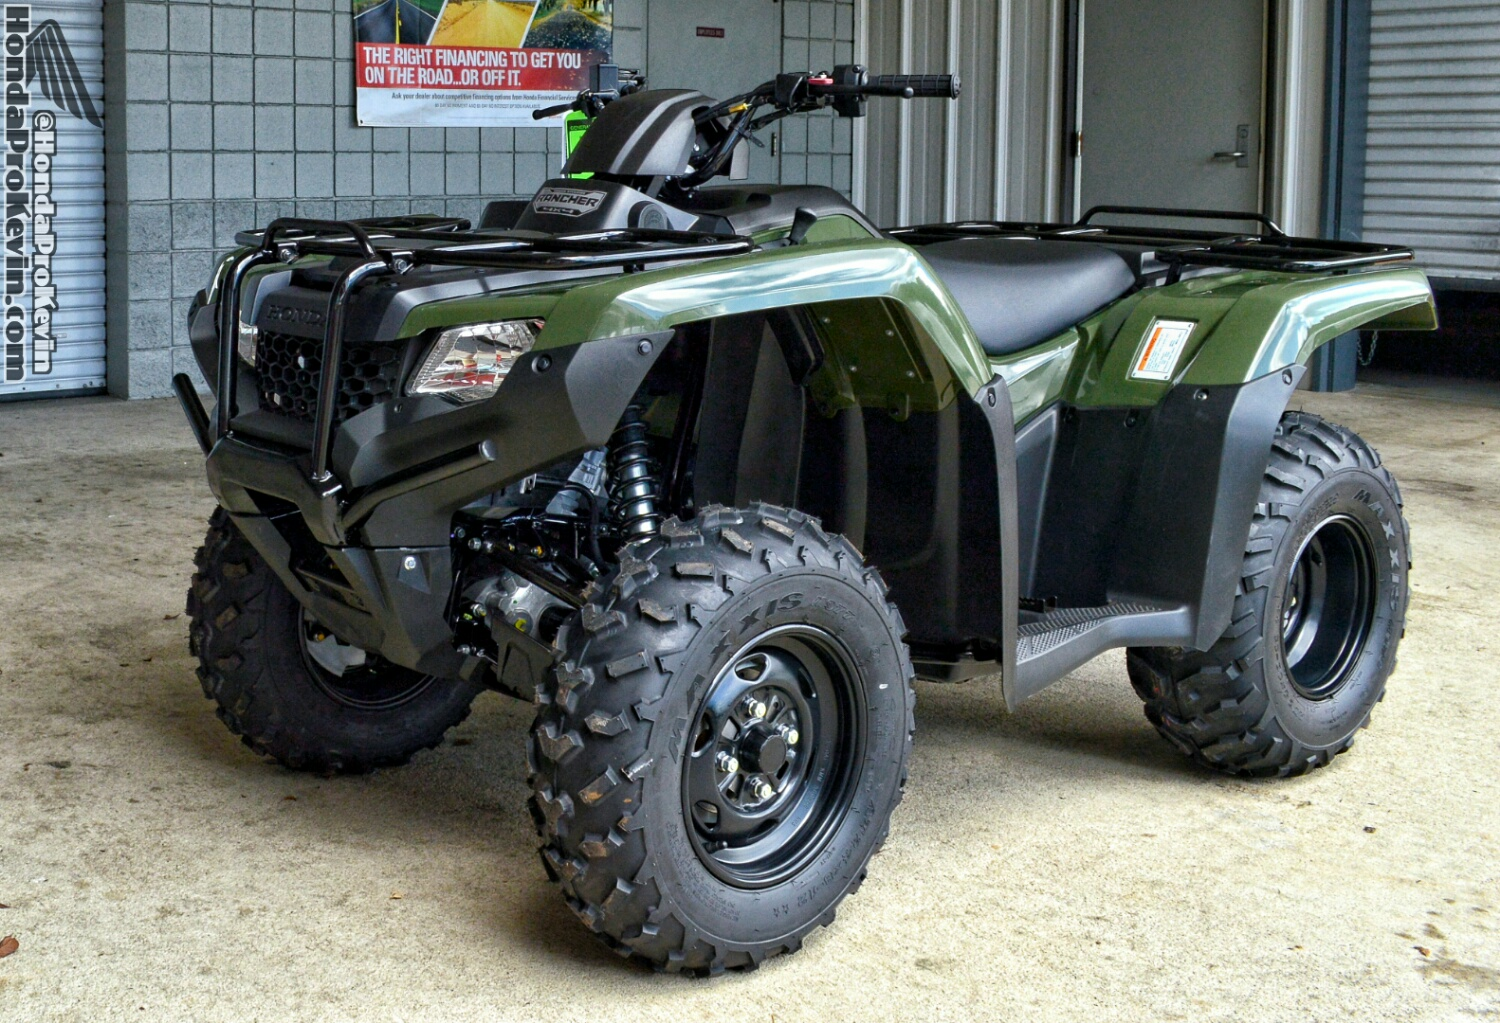 2016 Honda Rancher 420 Atv Model Lineup Review Differences Explained Comparison Honda Pro